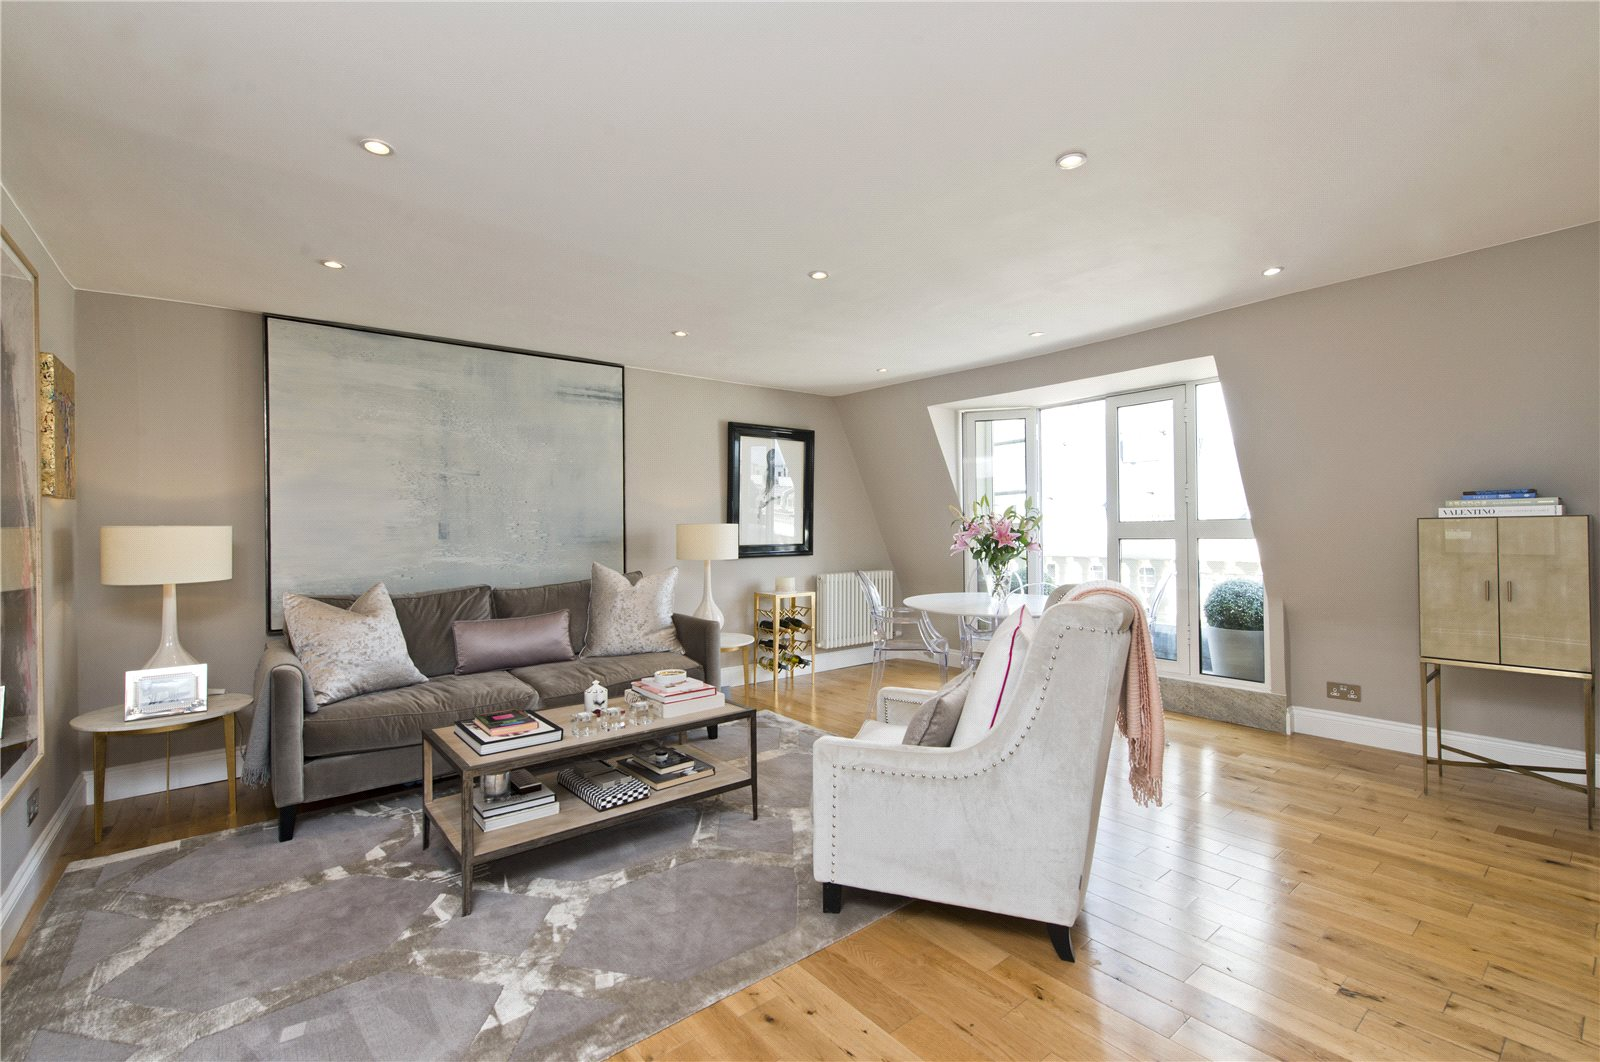 Apartments / Residences for Sale at Prince of Wales Terrace, Kensington, London, W8 Kensington, London, England